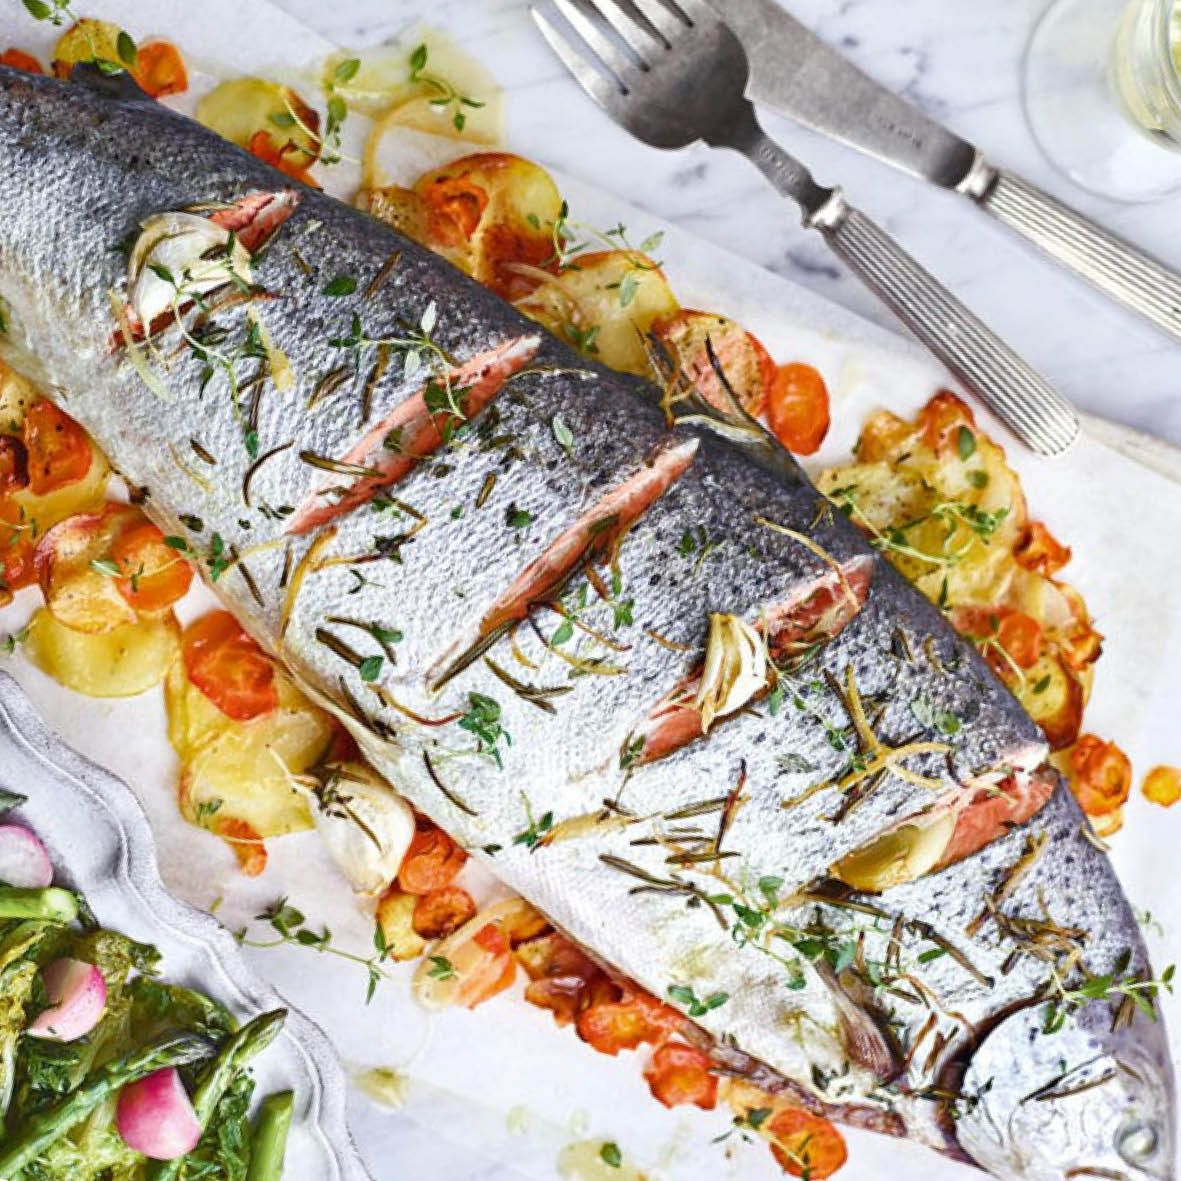 Whole_Roasted_Salmon_with_Herbs.jpg